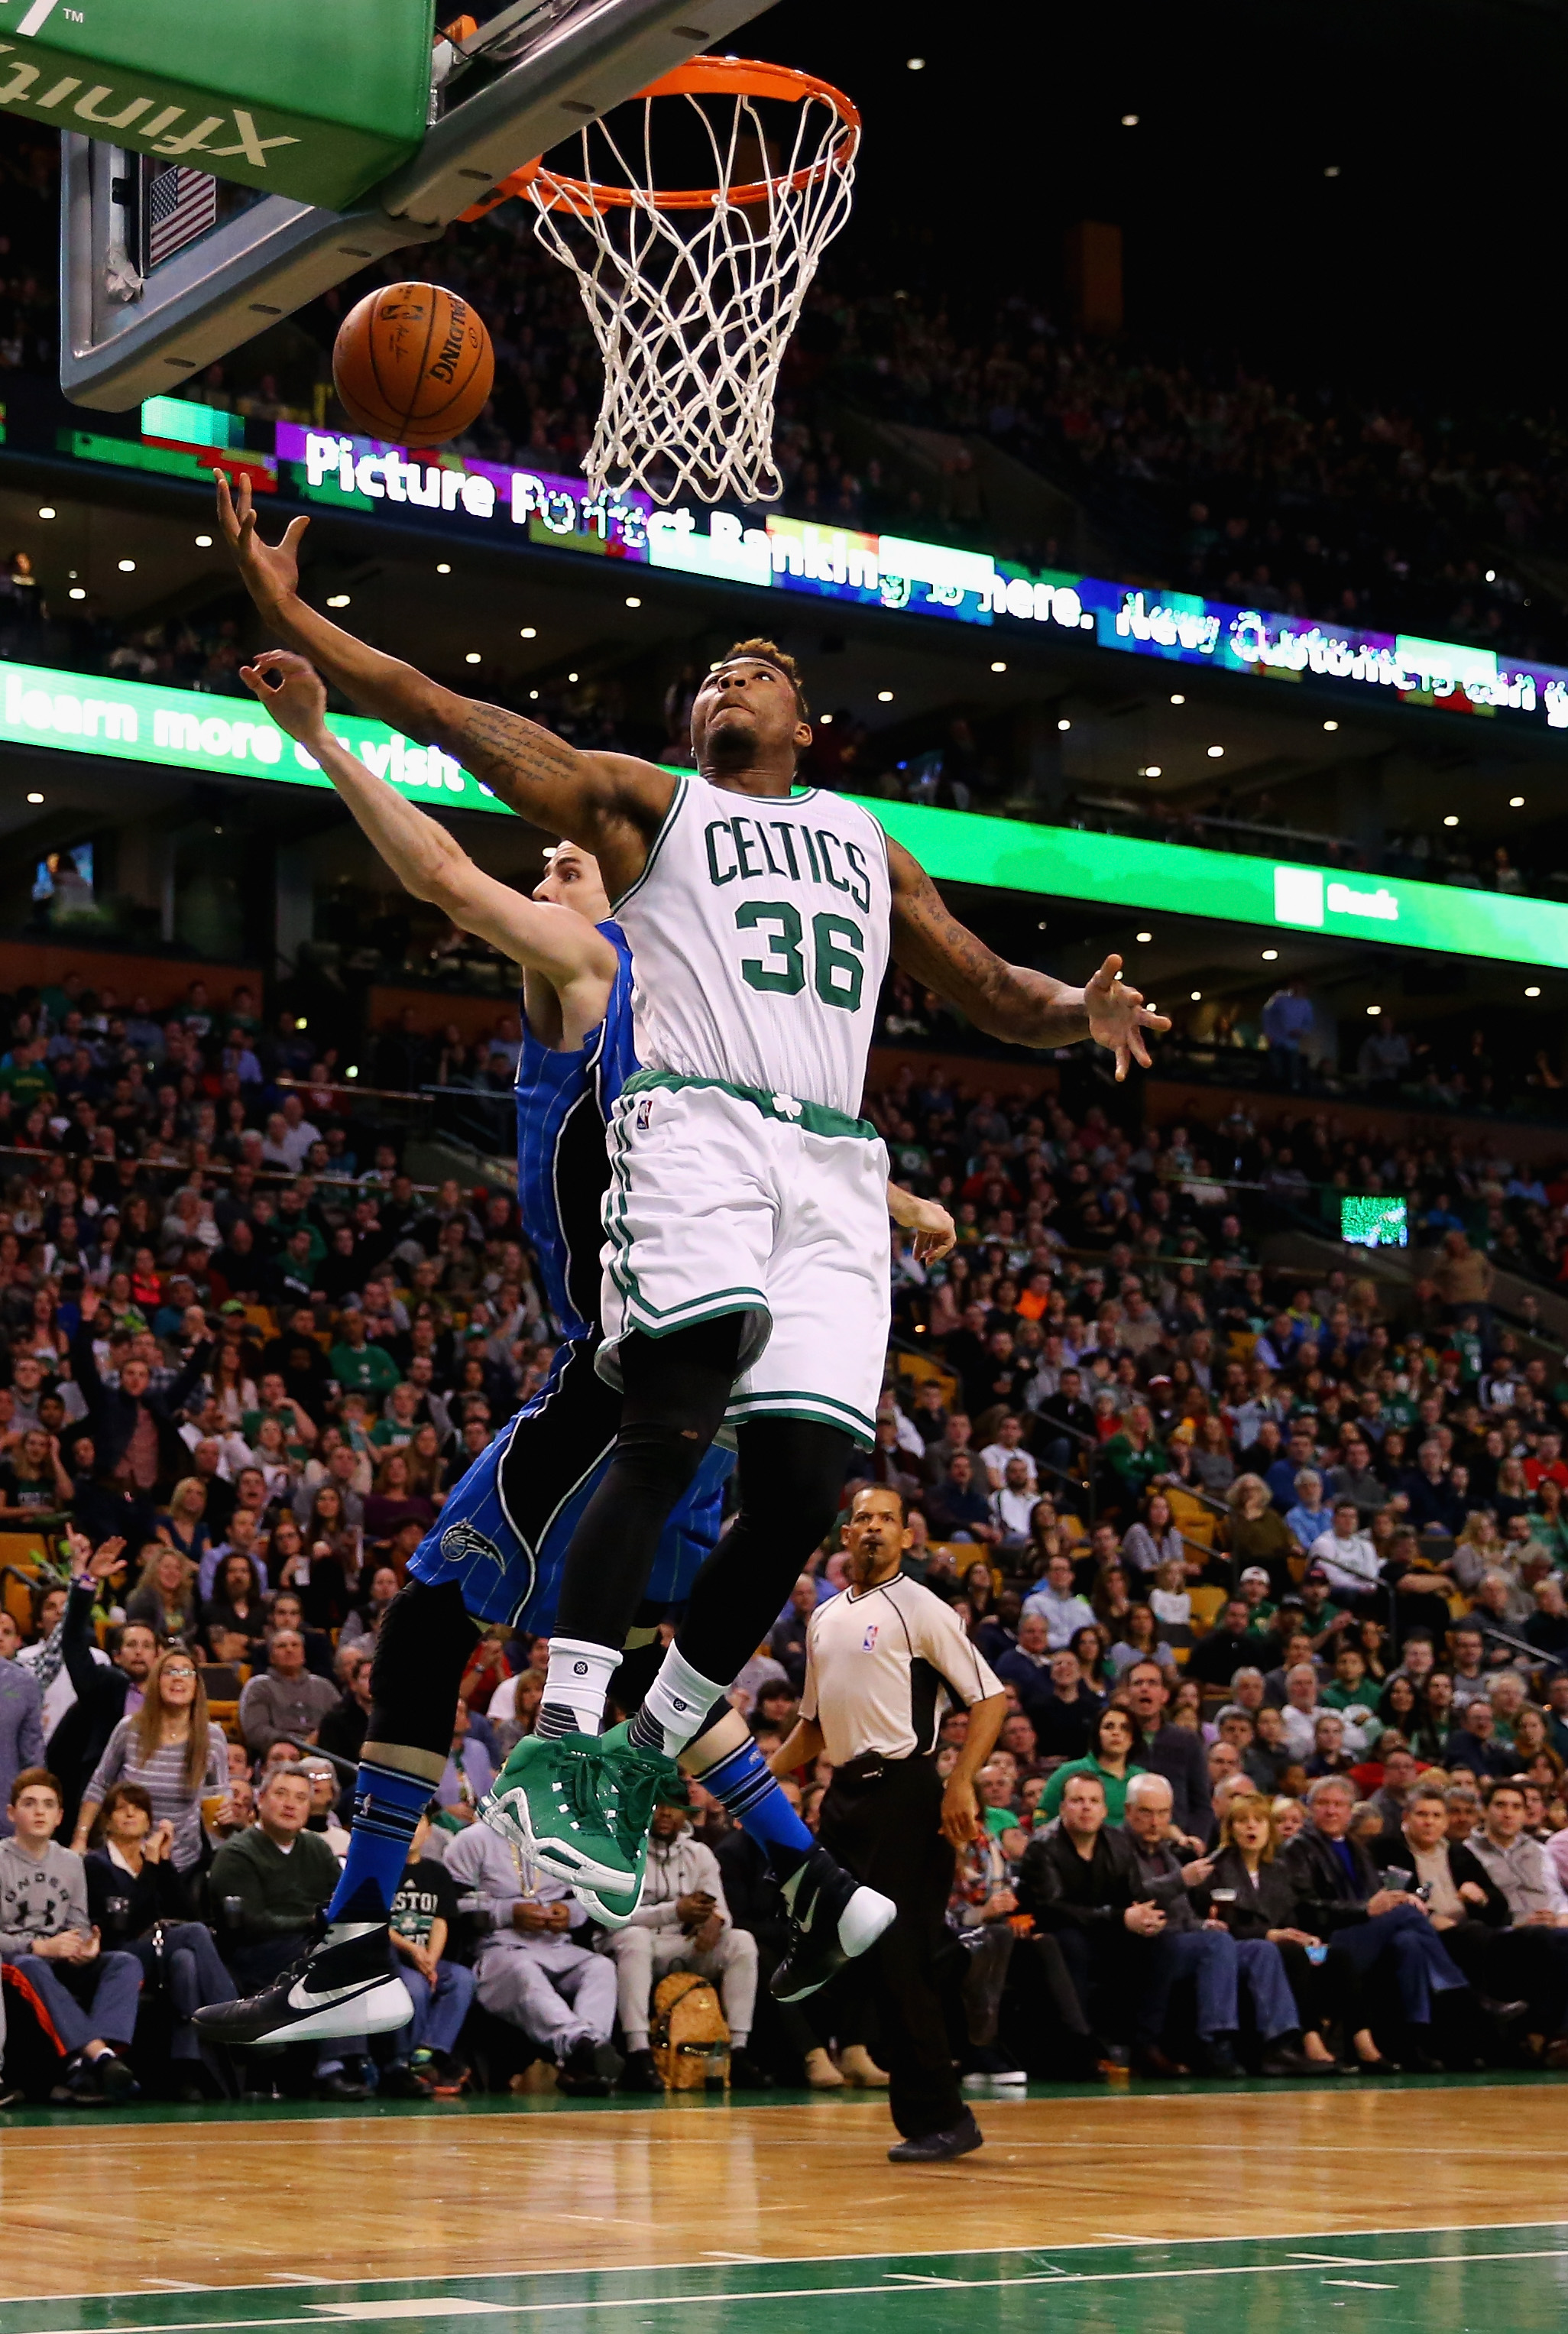 BOSTON, MA - JANUARY 29:  Marcus Smart #36 of the Boston Celtics hits a shot with pressure from Jason Smith #14 of the Orlando Magic during the third quarter at TD Garden on January 29, 2016 in Boston, Massachusetts. (Photo by Maddie Meyer/Getty Images)